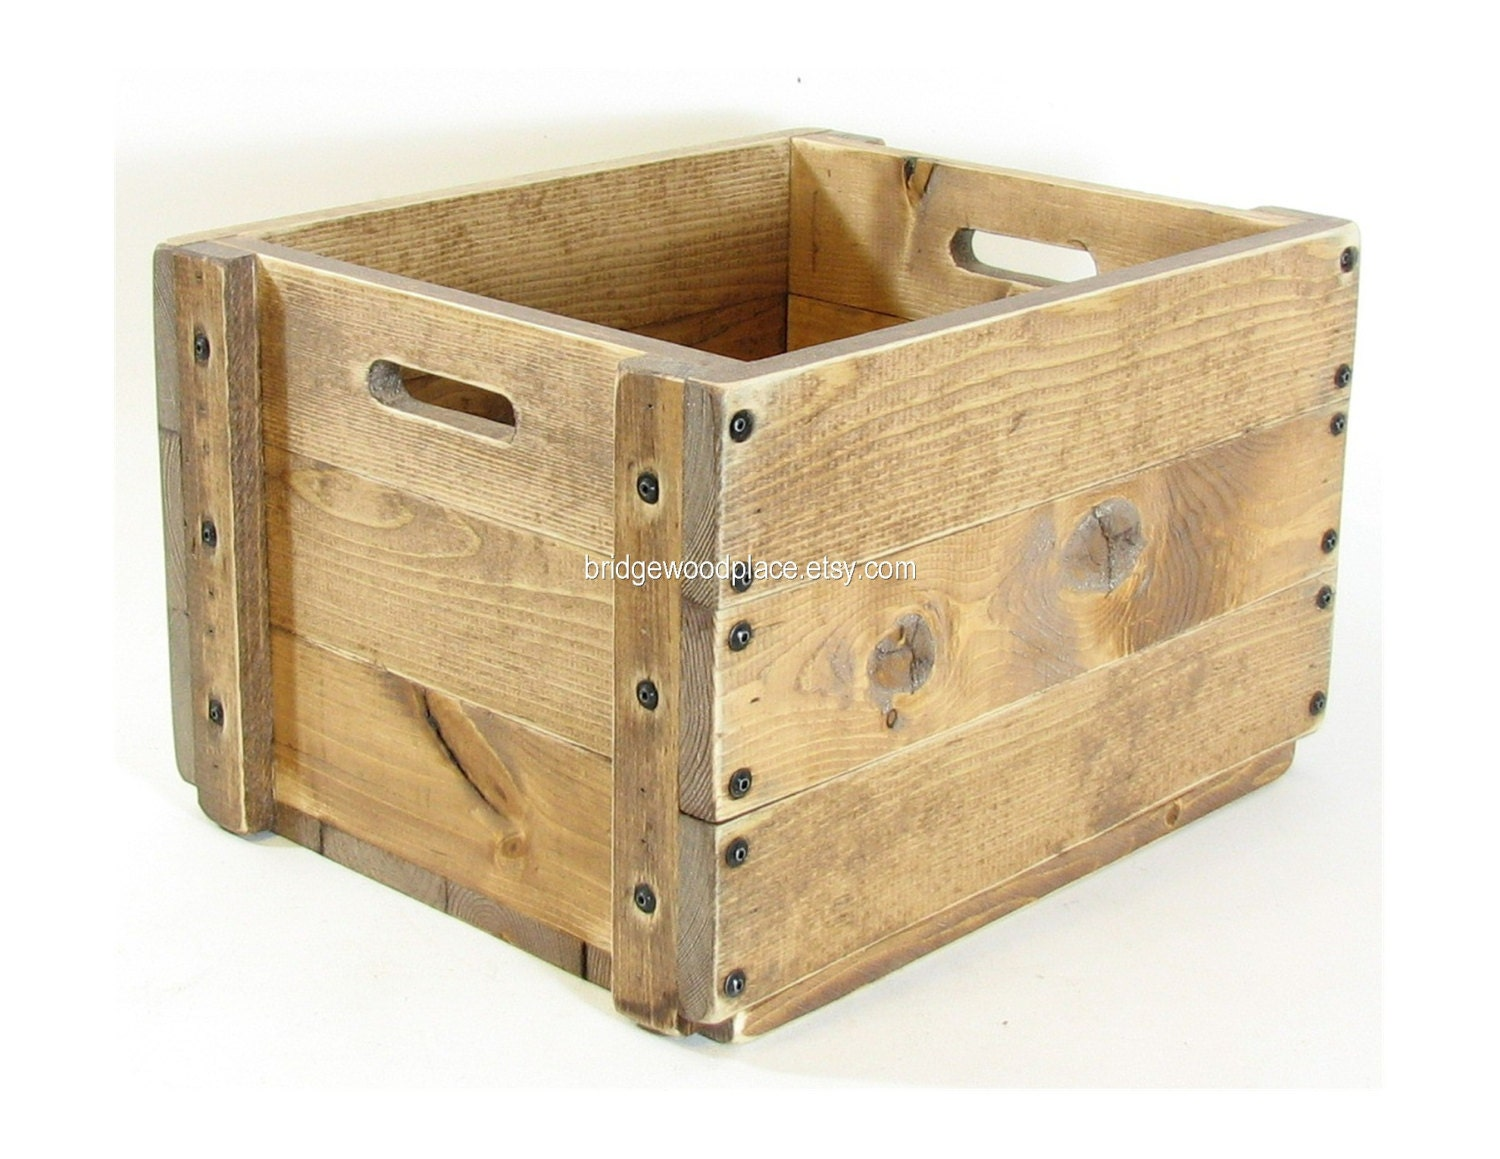 Wood Crate Wooden Box Small Table Furniture By Bridgewoodplace